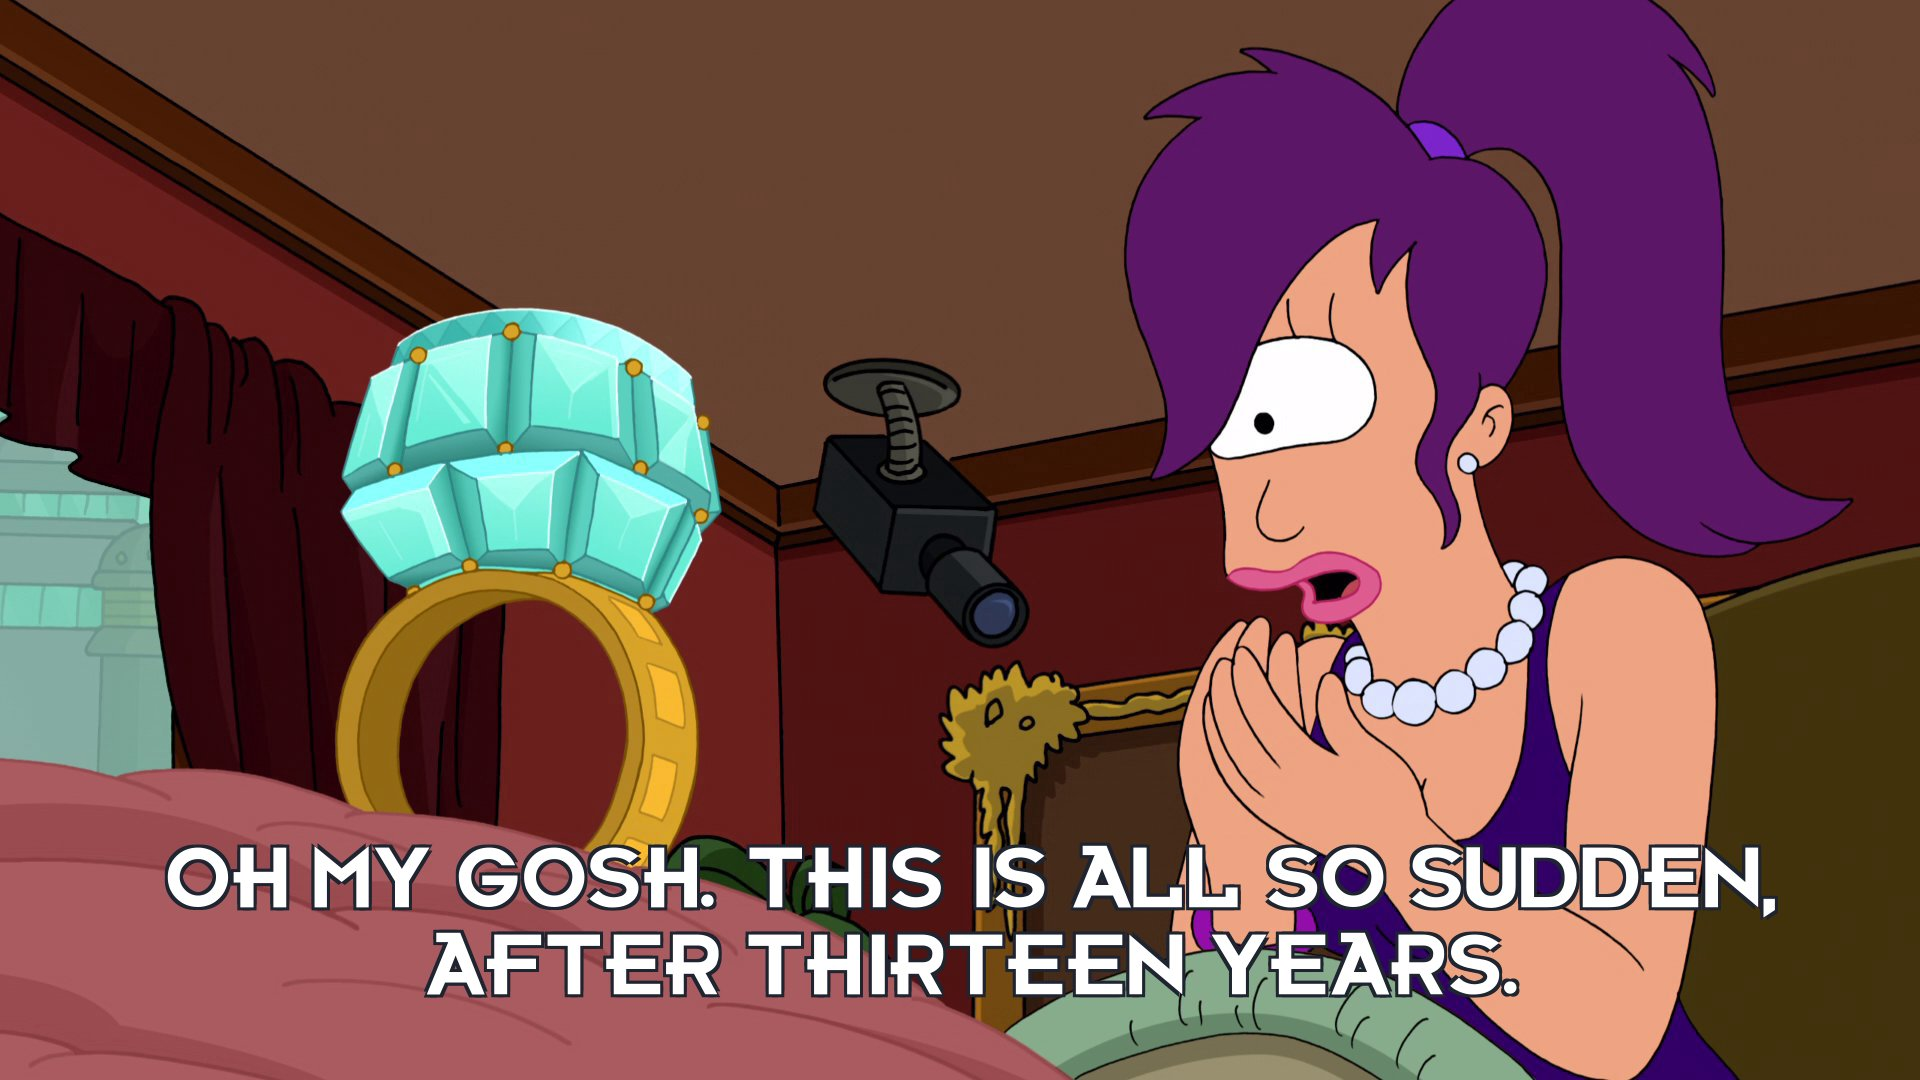 Turanga Leela: Oh my gosh. This is all so sudden, after thirteen years.